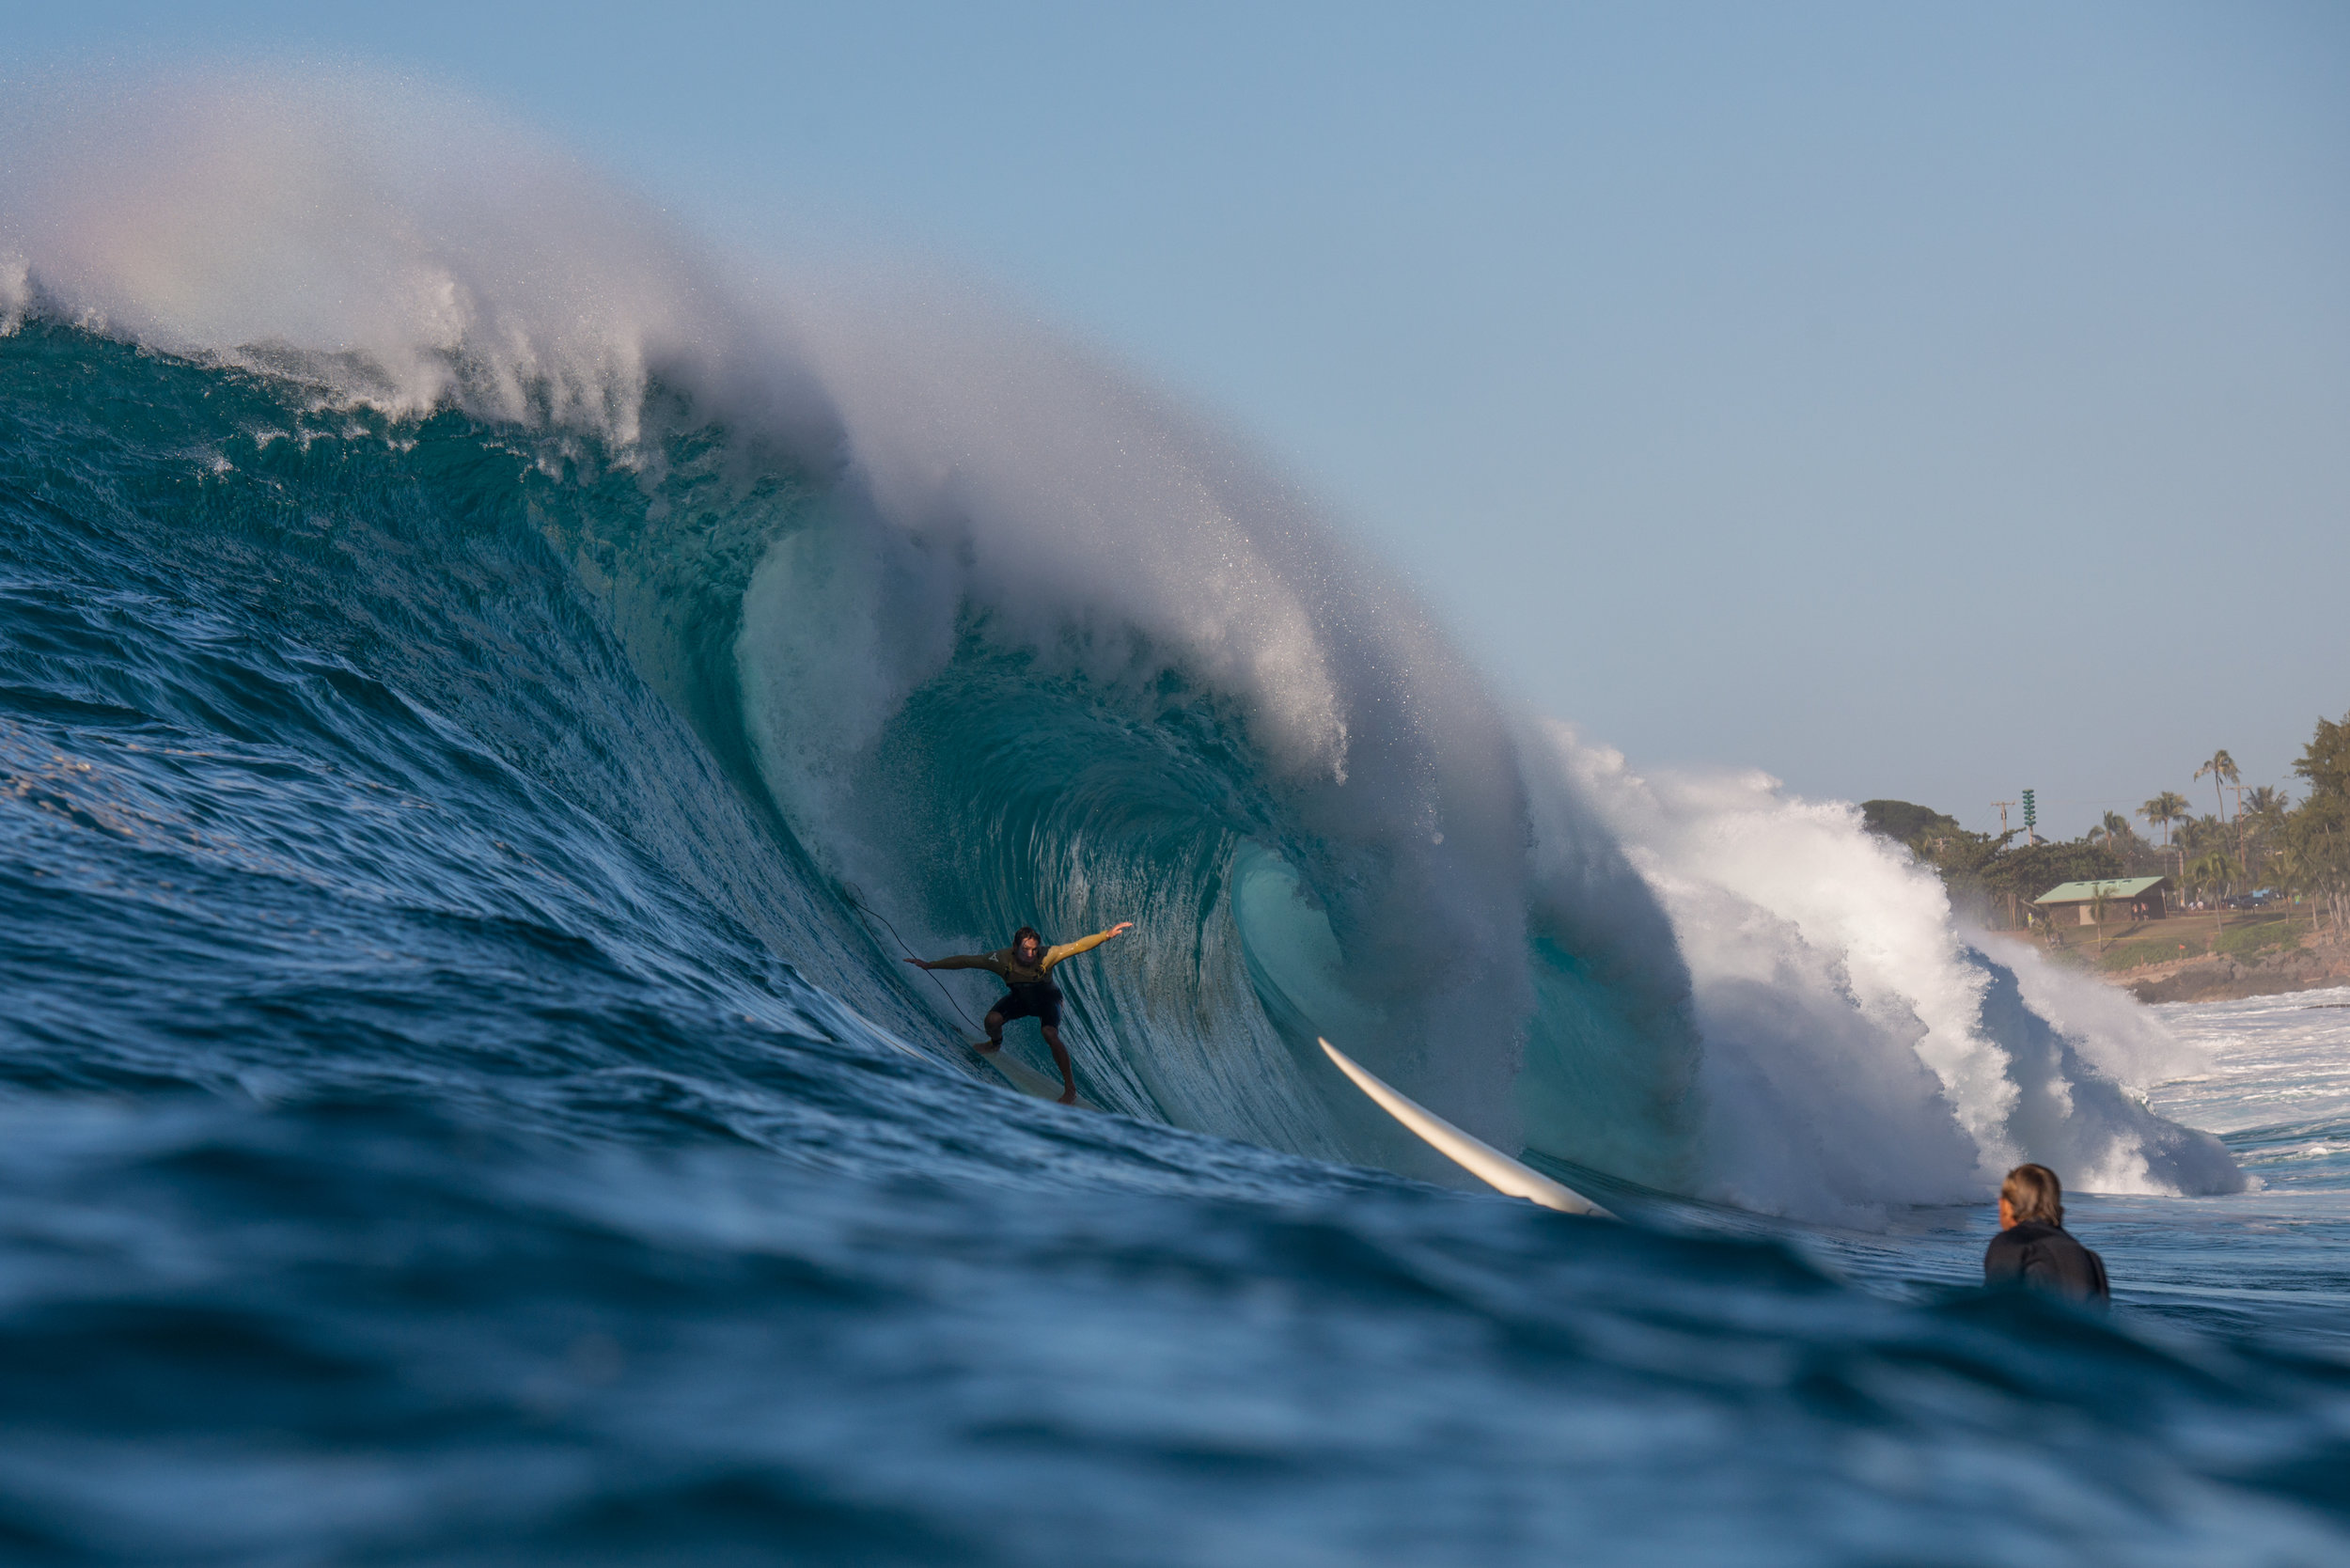 Shooting from the water at Waimea Bay